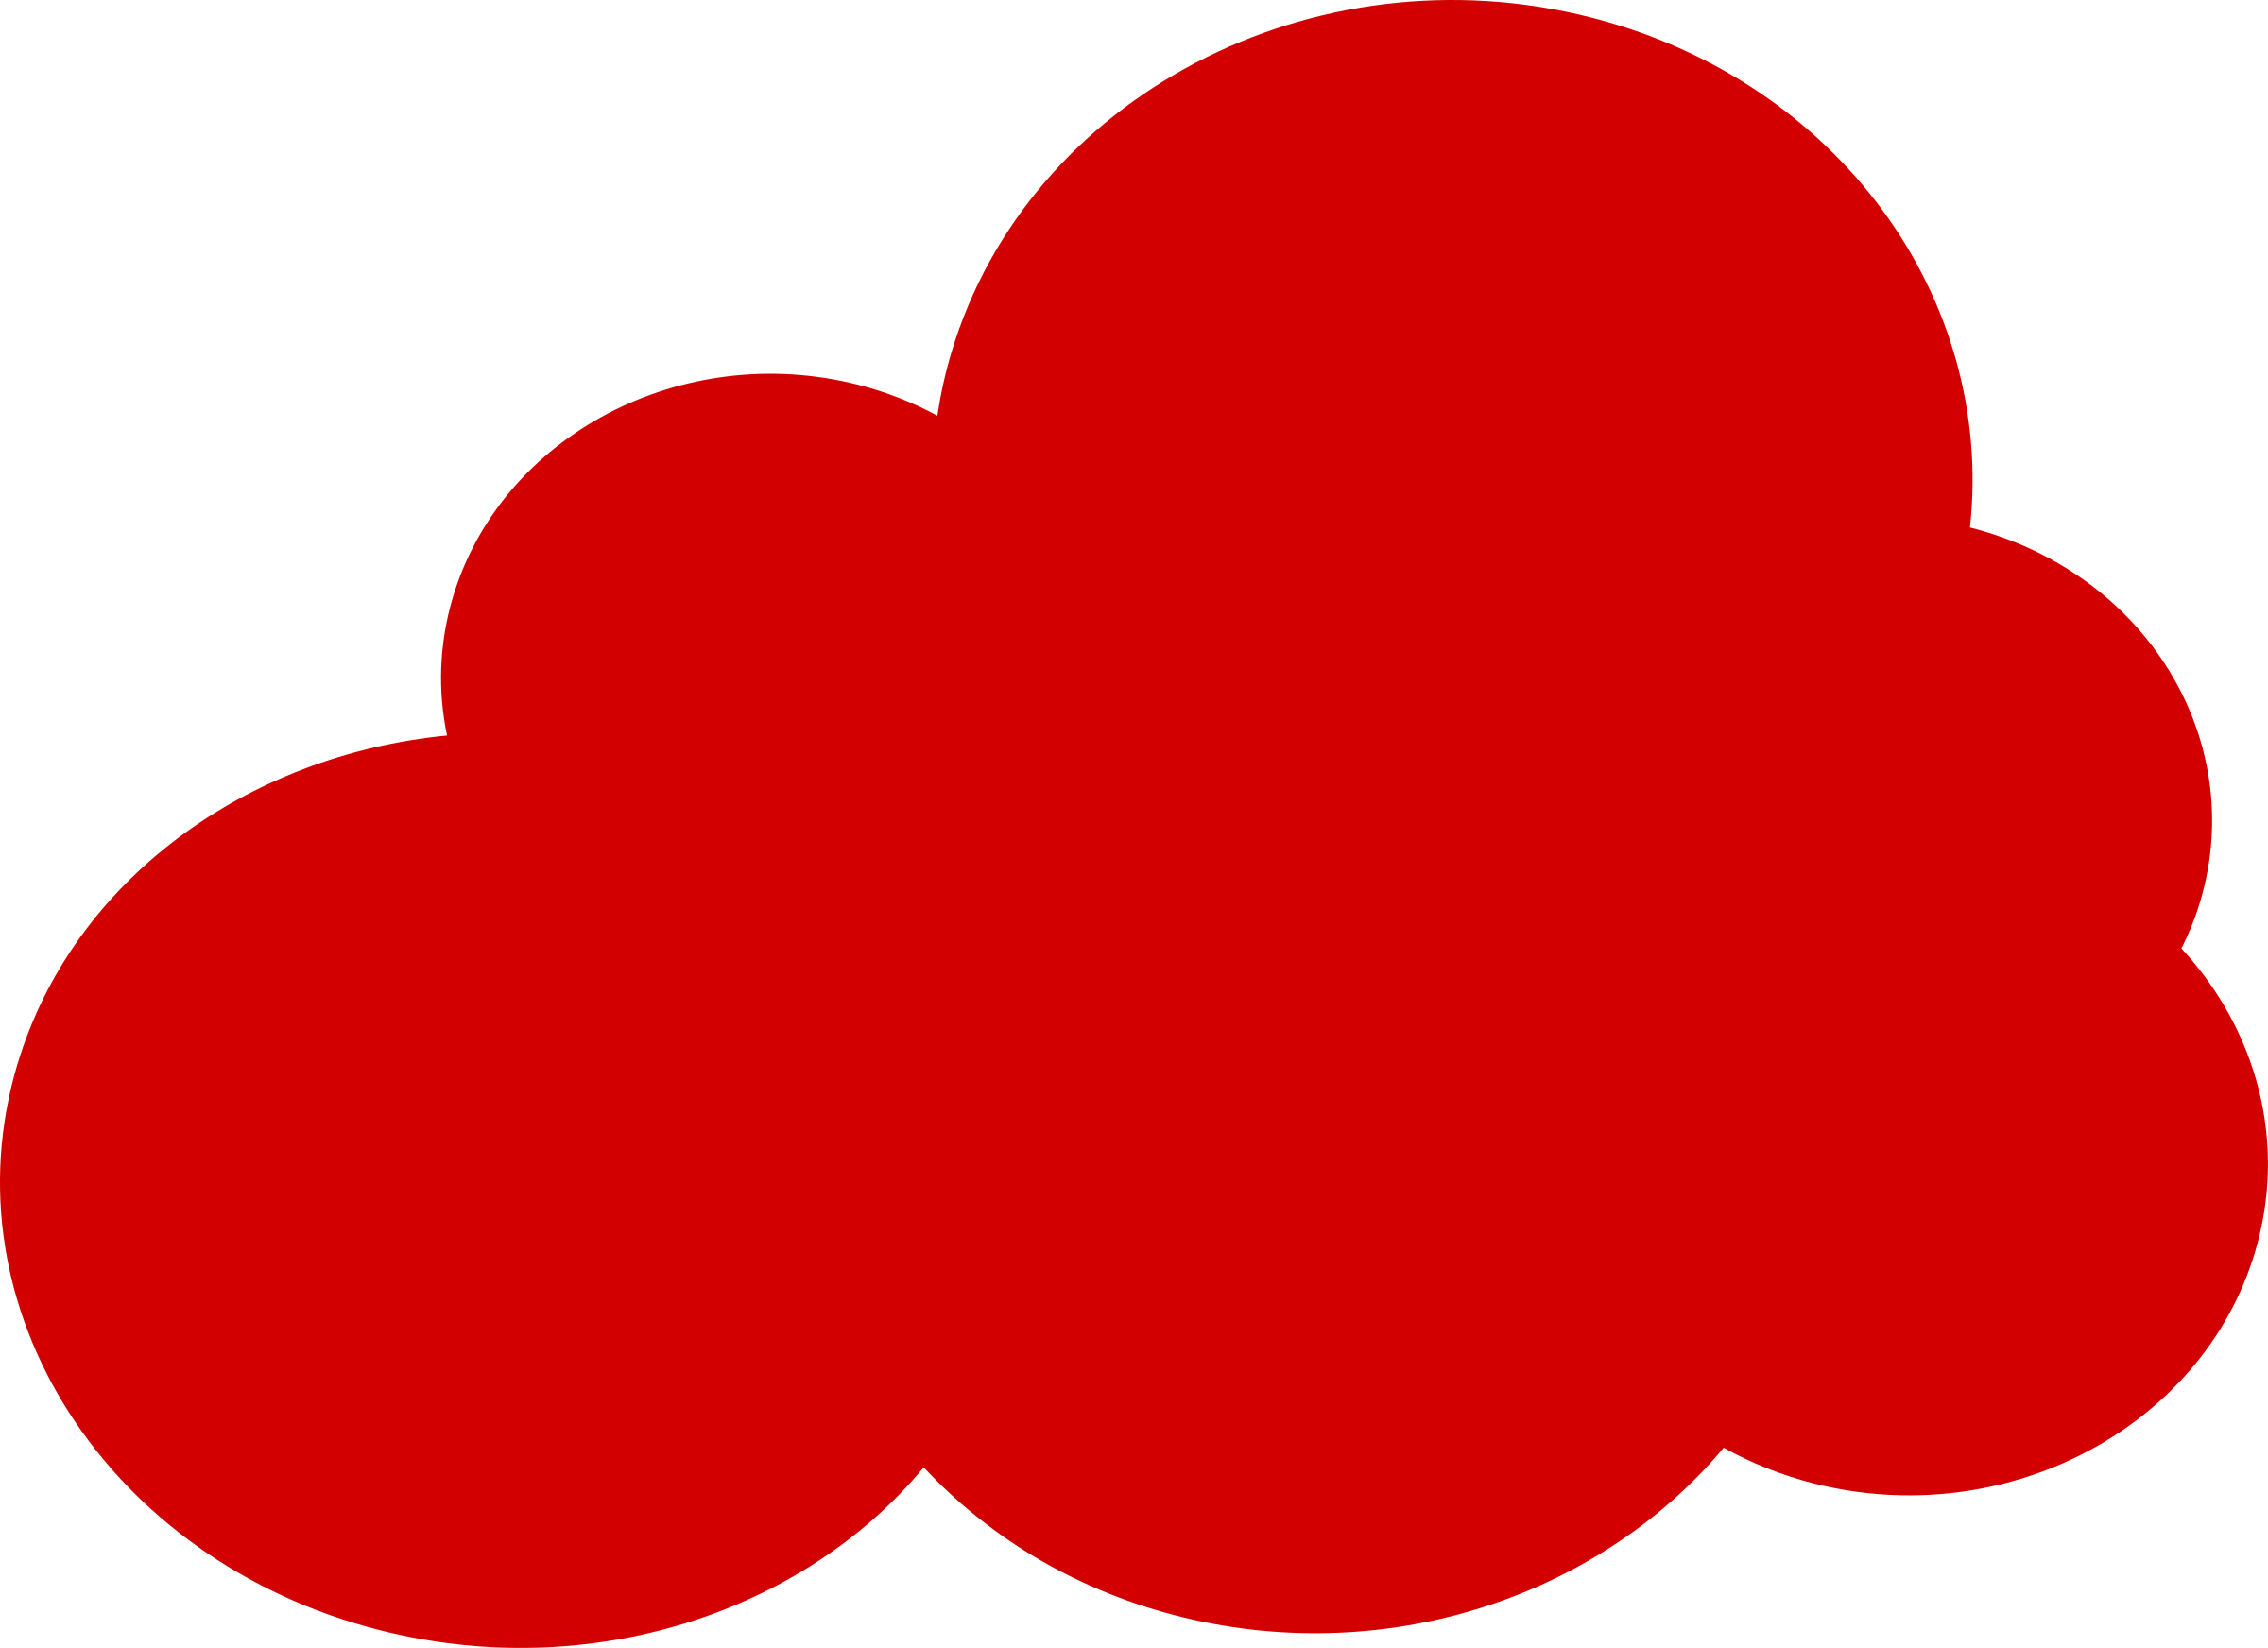 Big cloud image png. Clouds clipart red